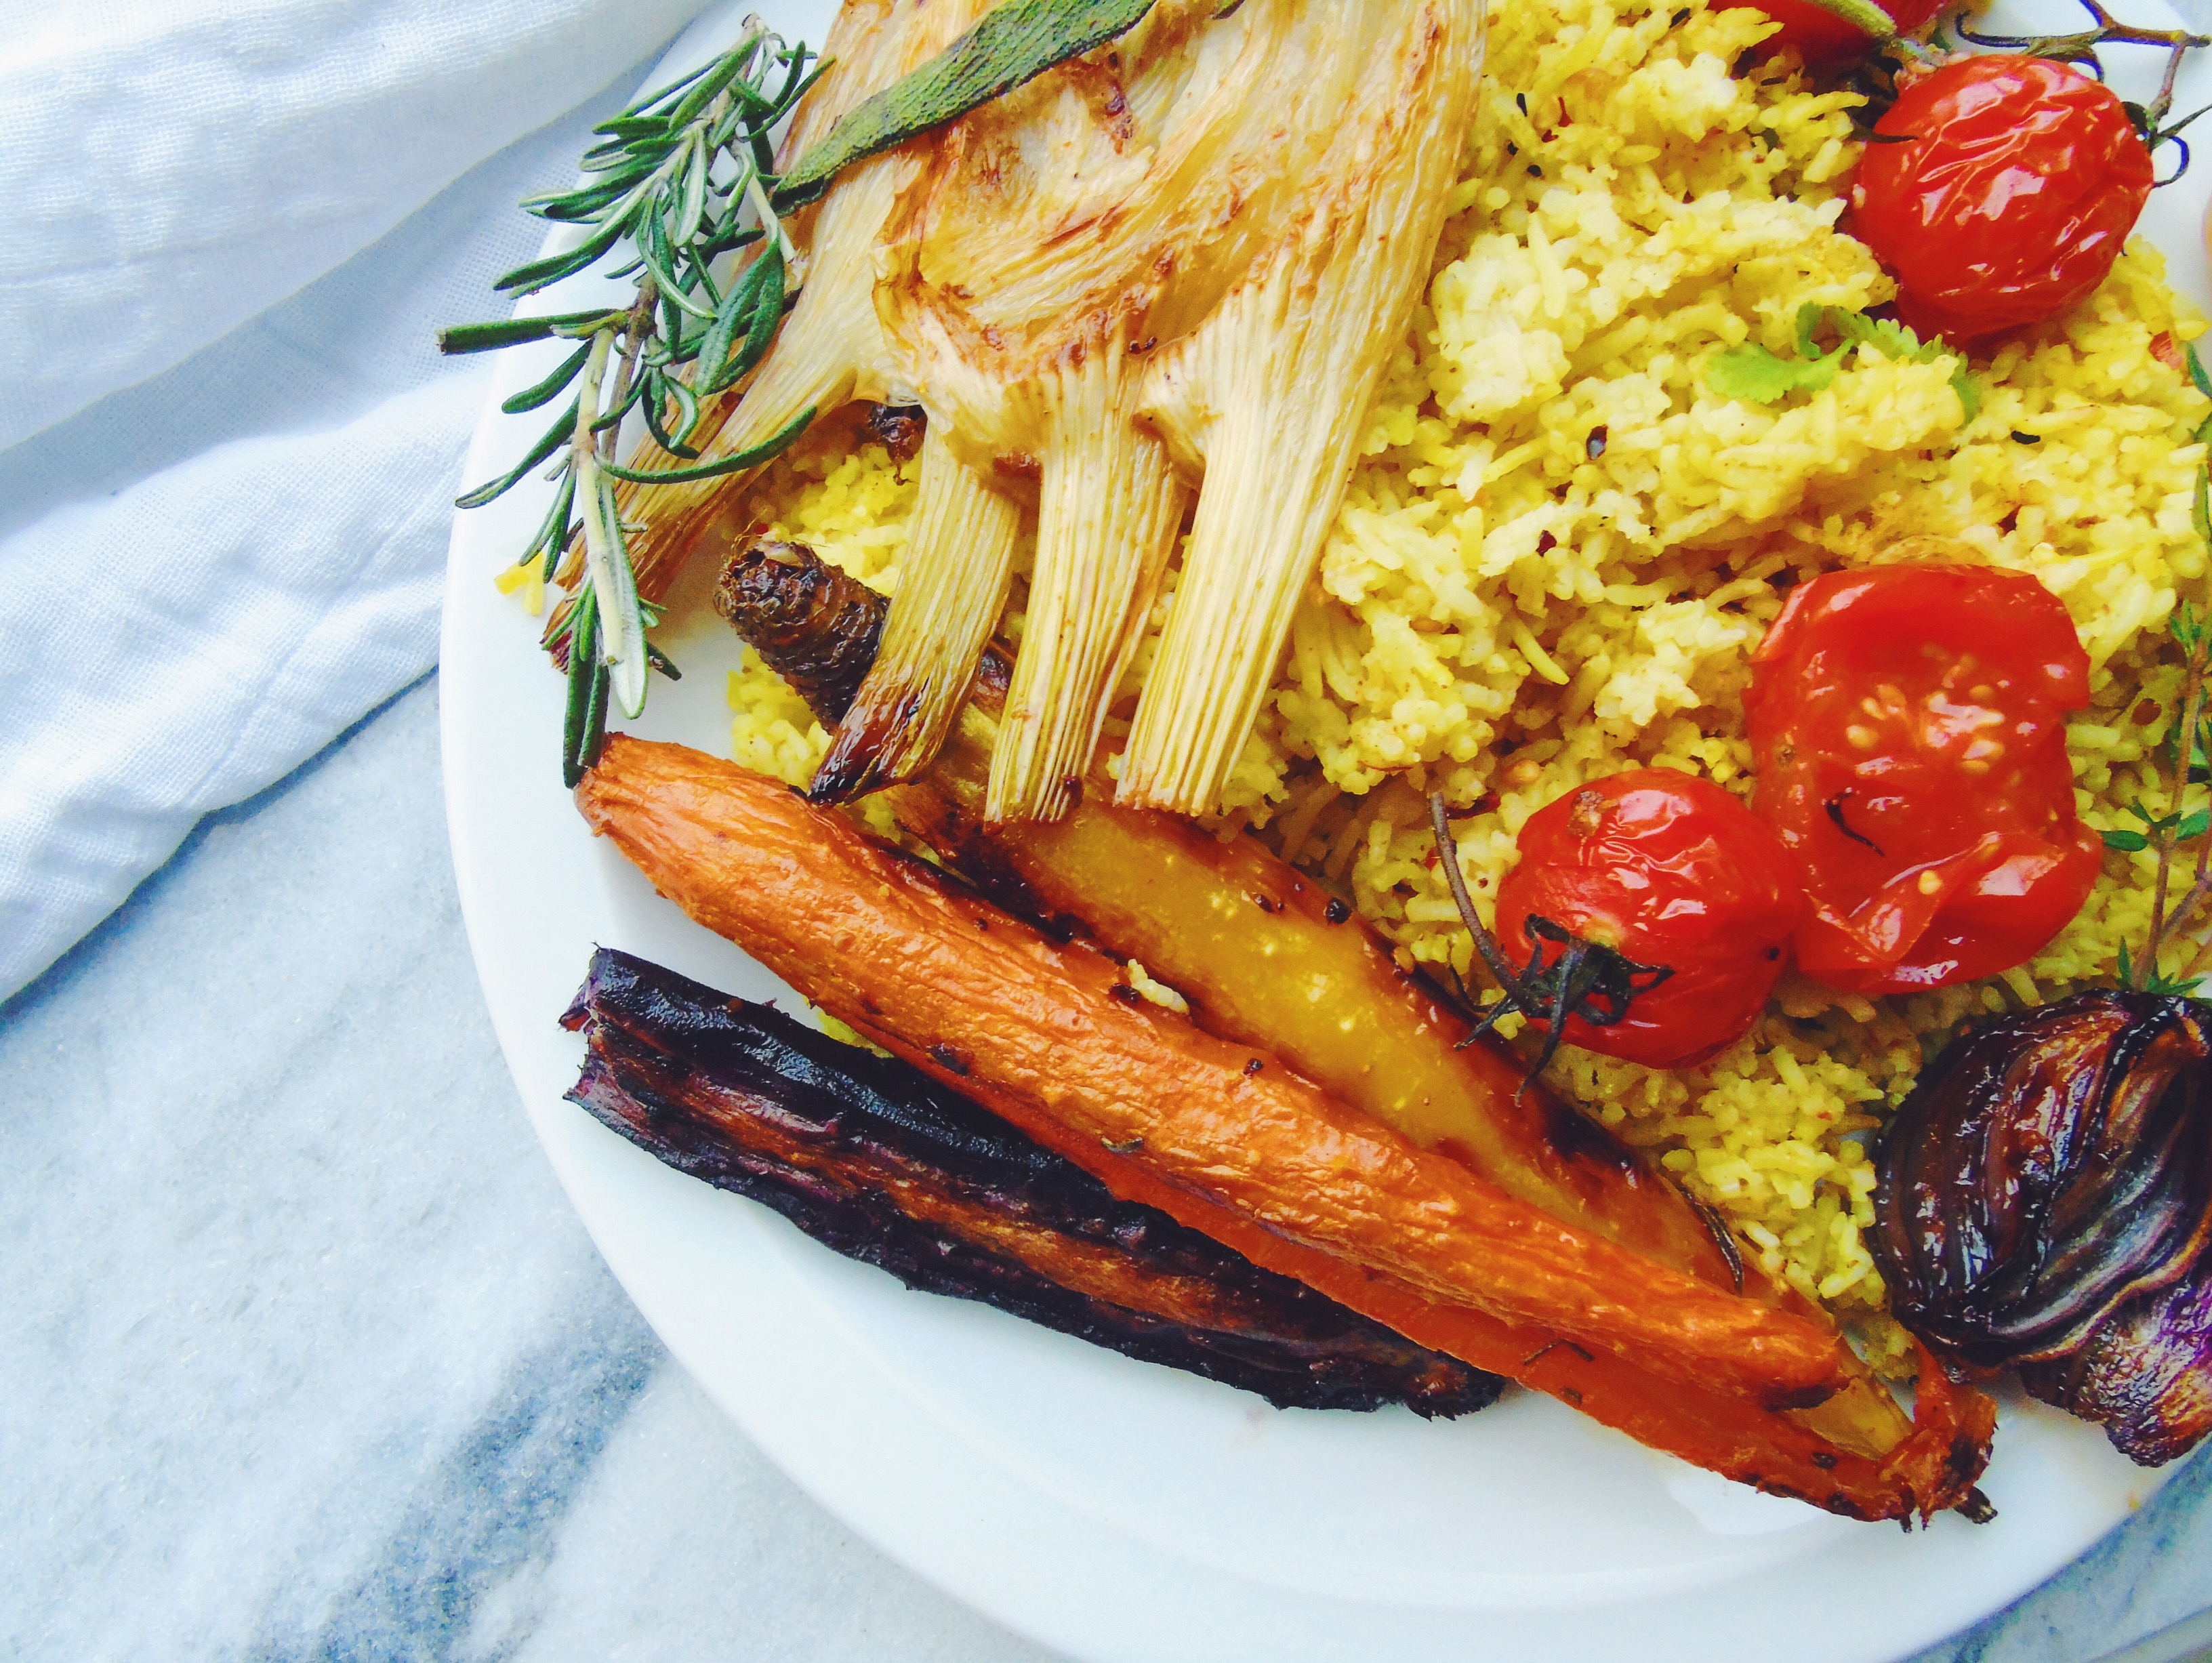 Roasted vegetables and curried rice